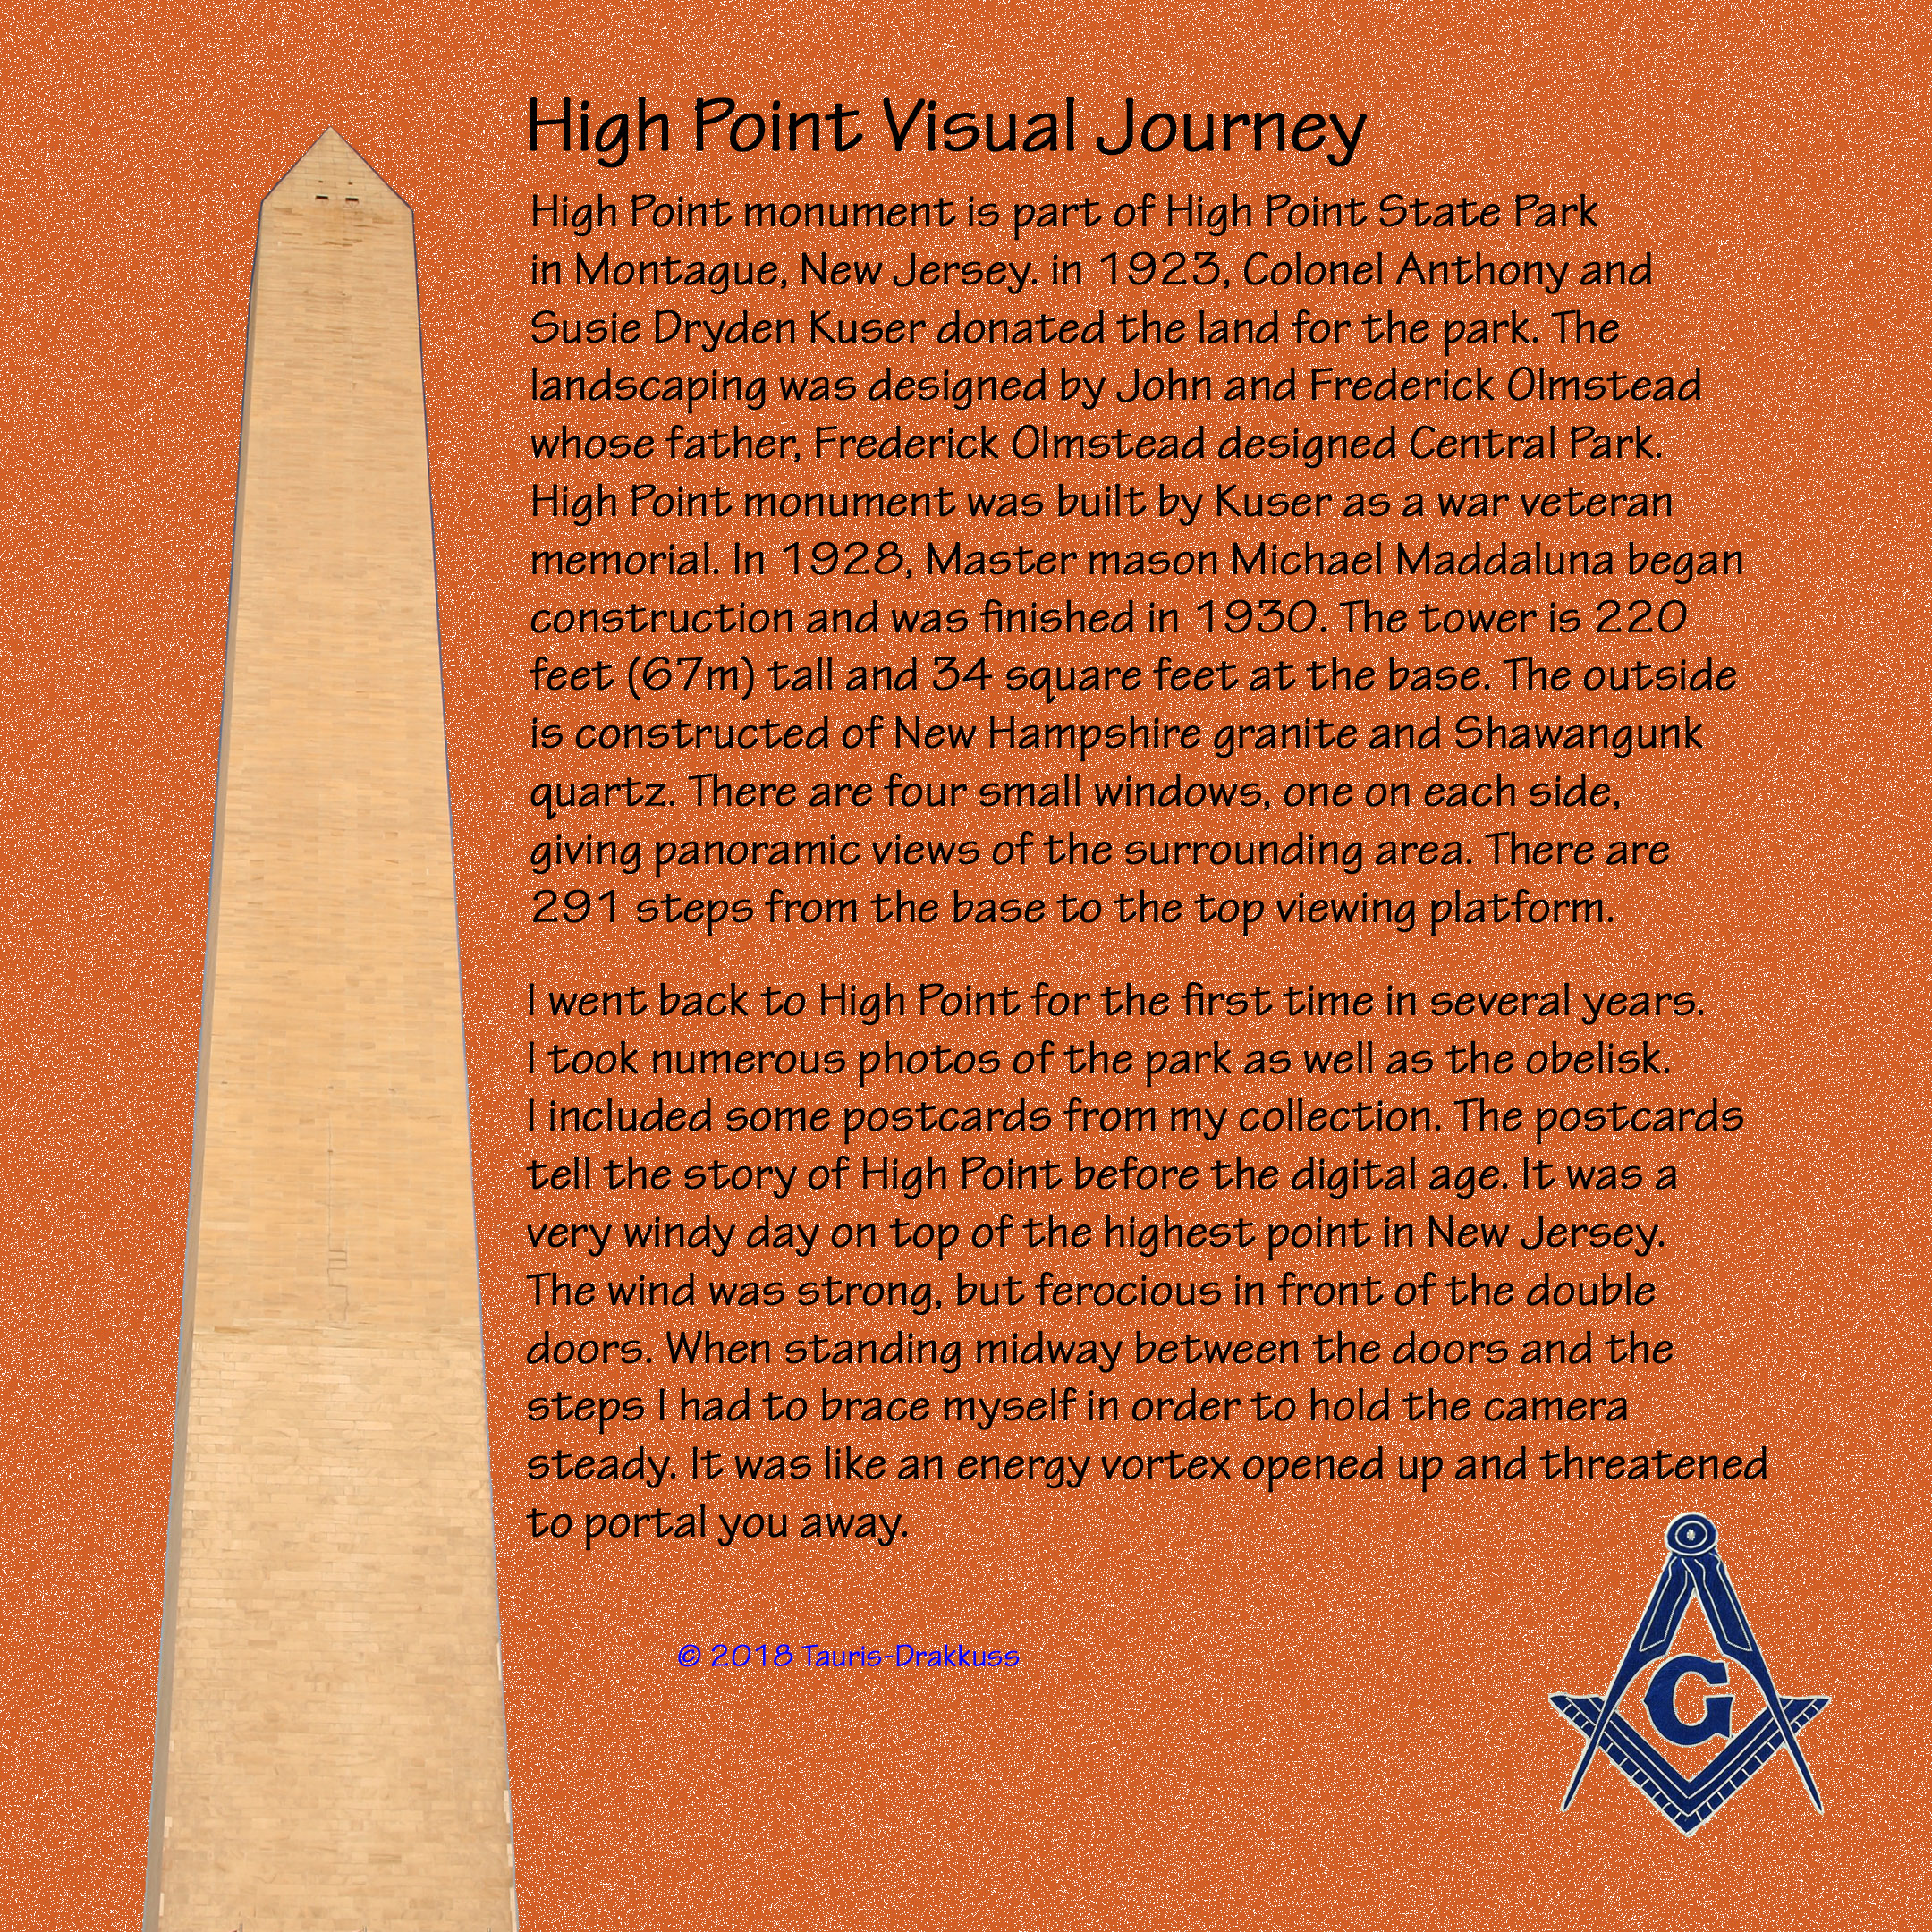 High Point Visual Journey Masonic